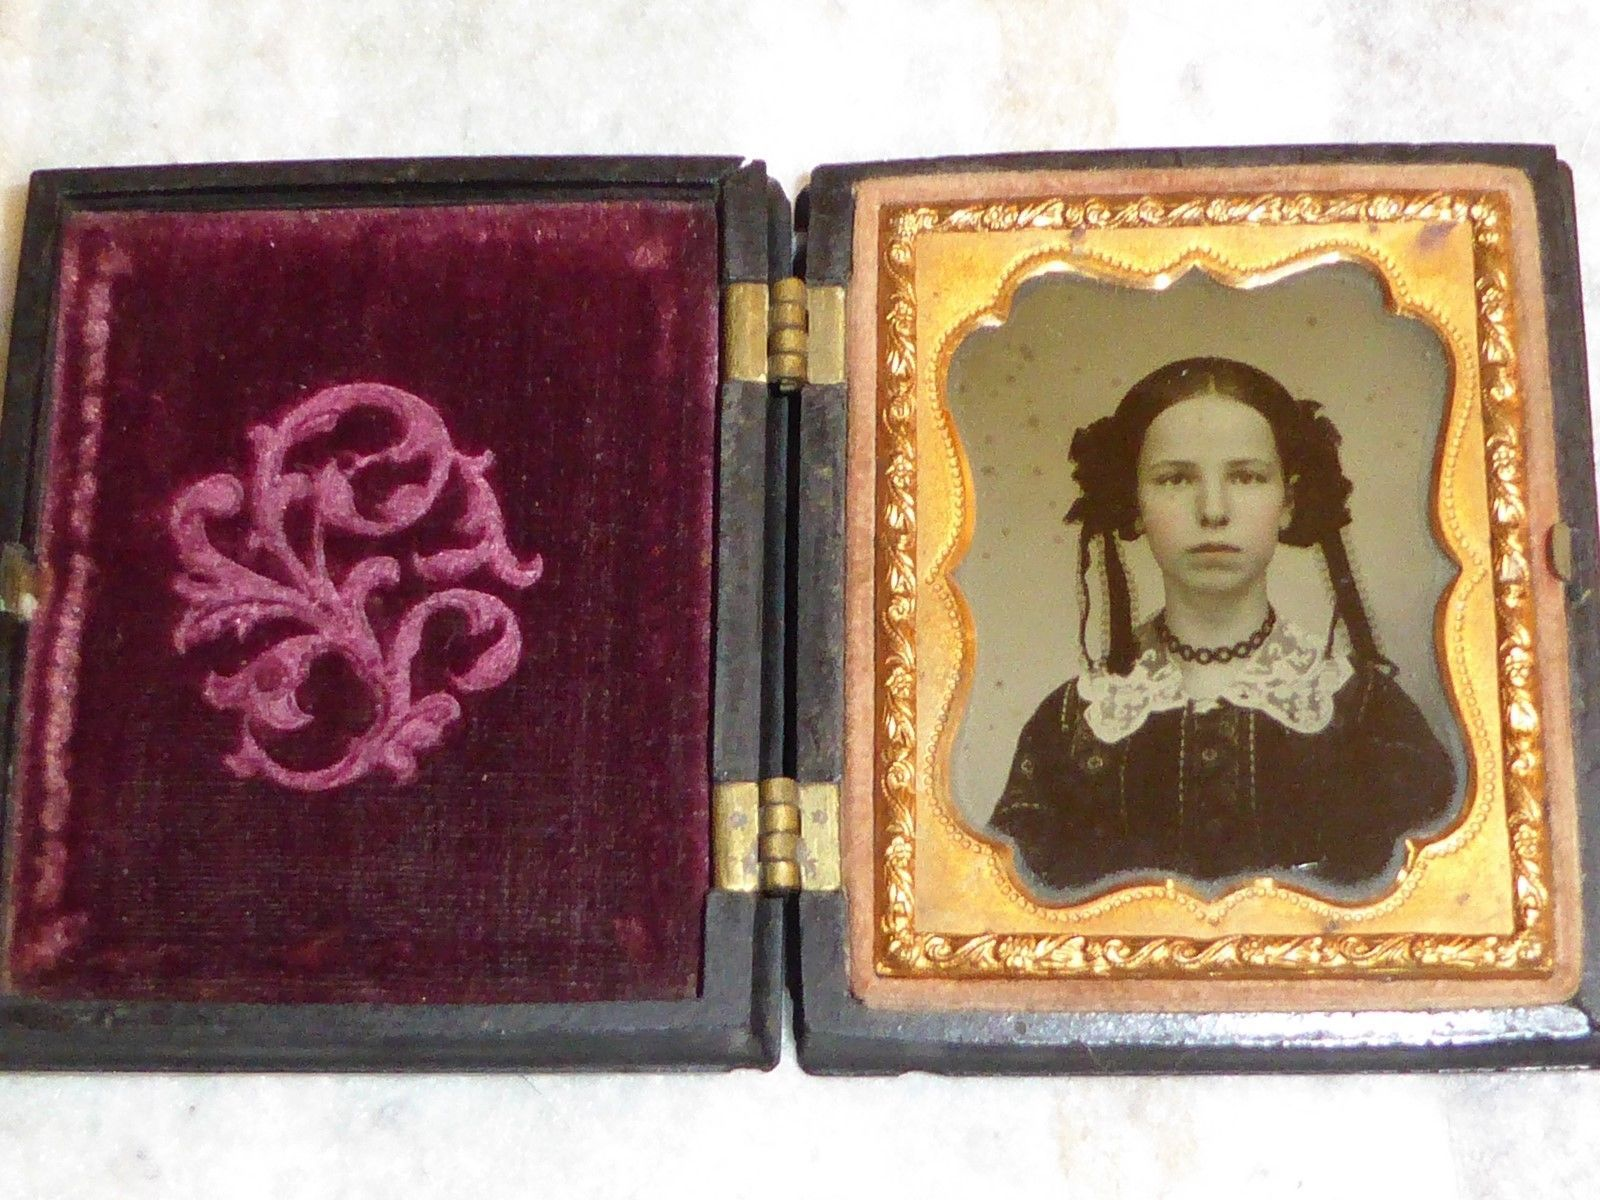 RARE 1850's 1 9 Plate Ambrotype of A Beauty with Lace Jewels Tresses | eBay